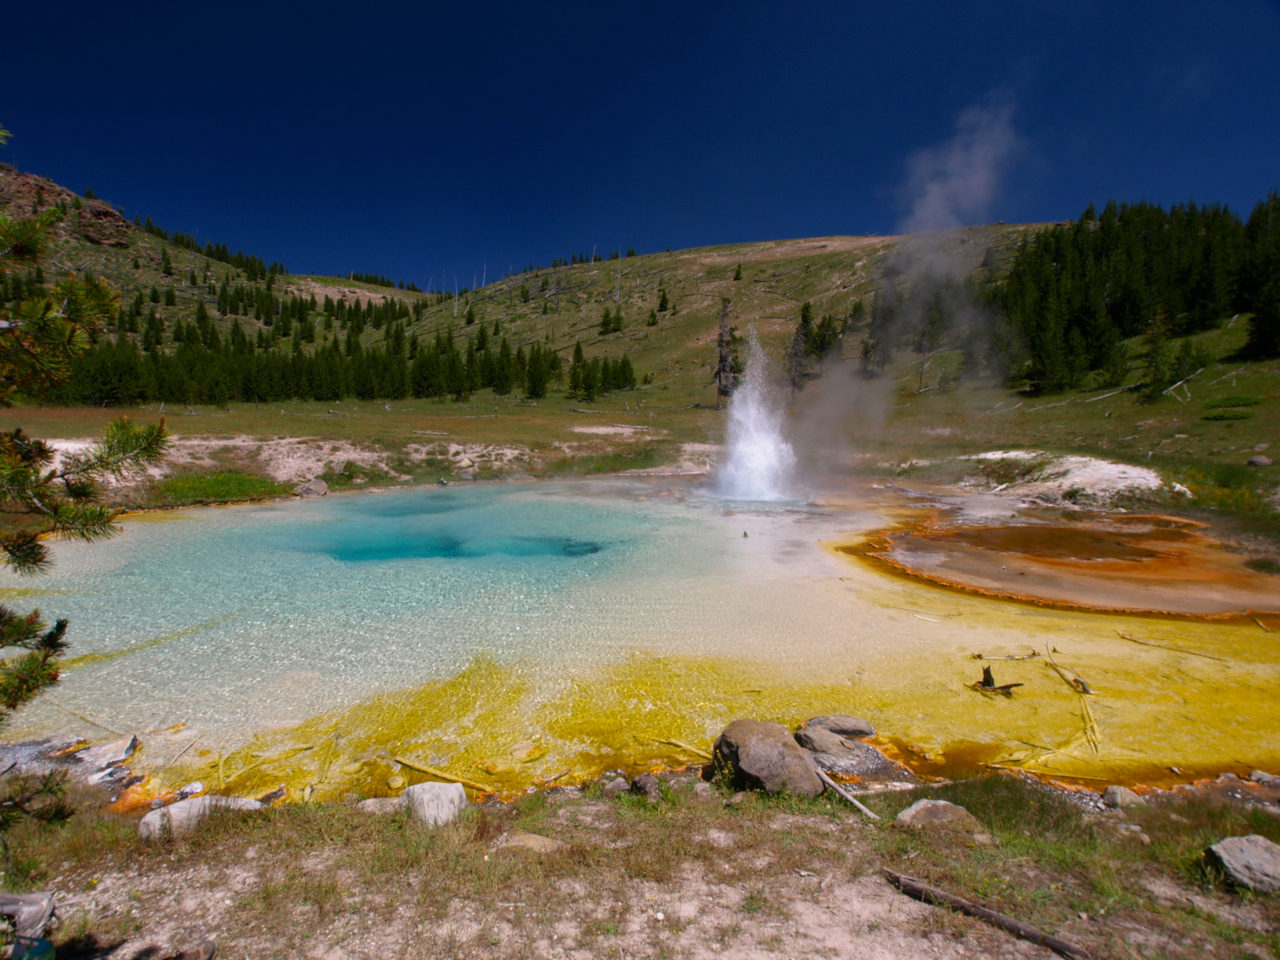 Geothermal phenomena of Yellowstone Park ACT